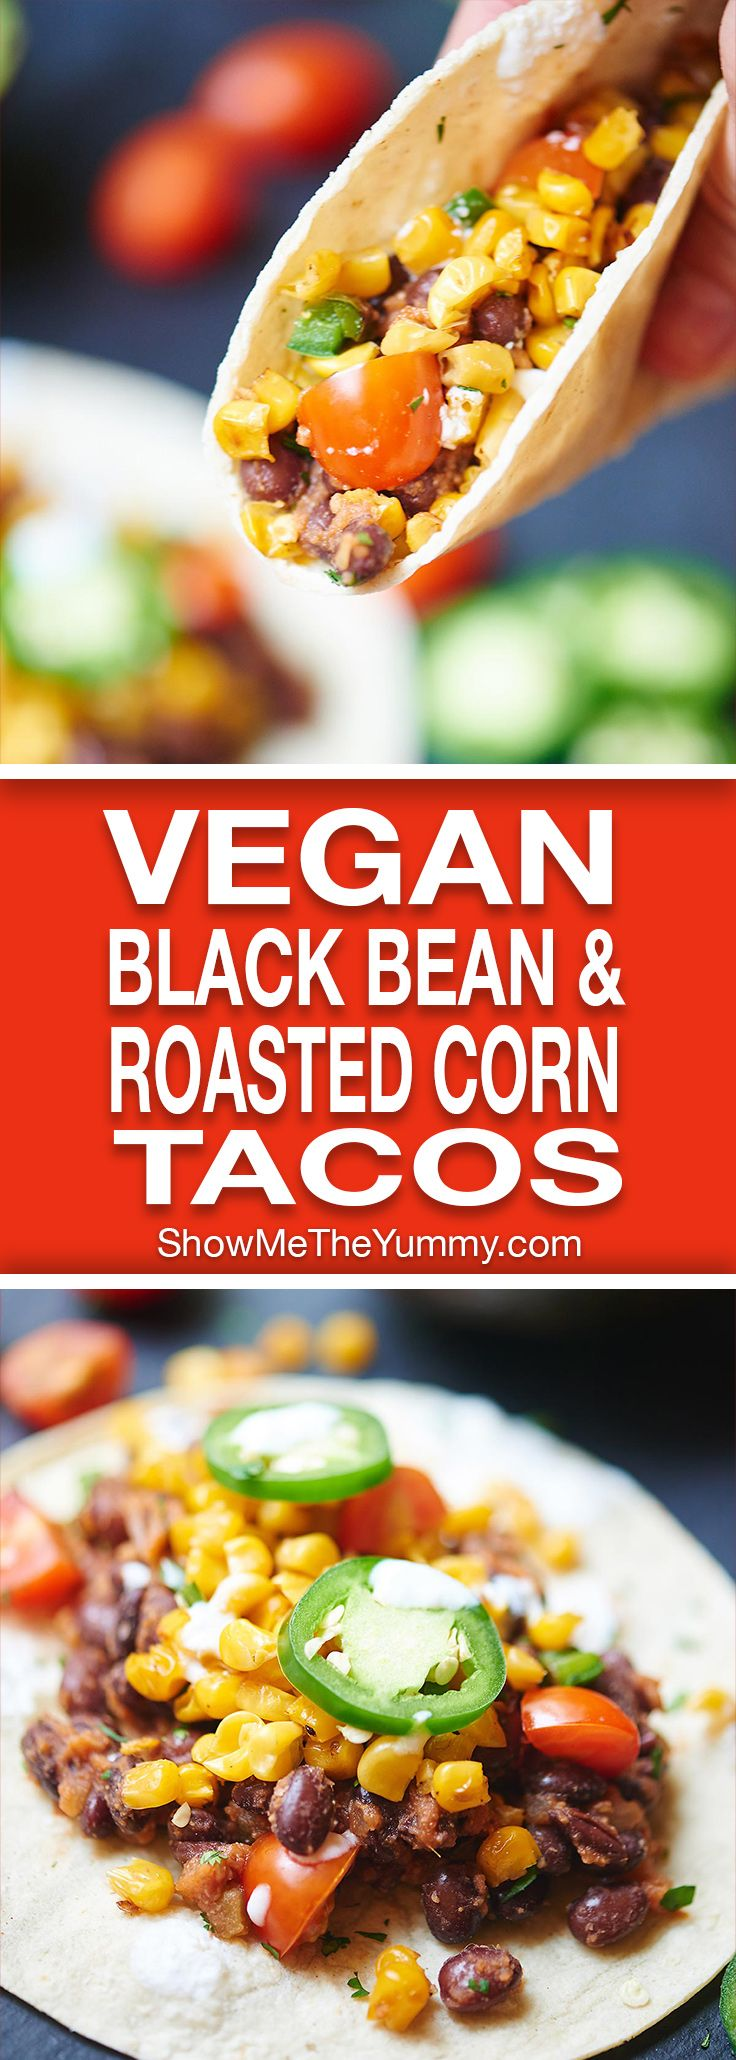 These easy vegan black bean and roasted corn tacos are so good you'll want them for Meatless Monday and Taco Tuesday! showmetheyummy.com #vegan #taco